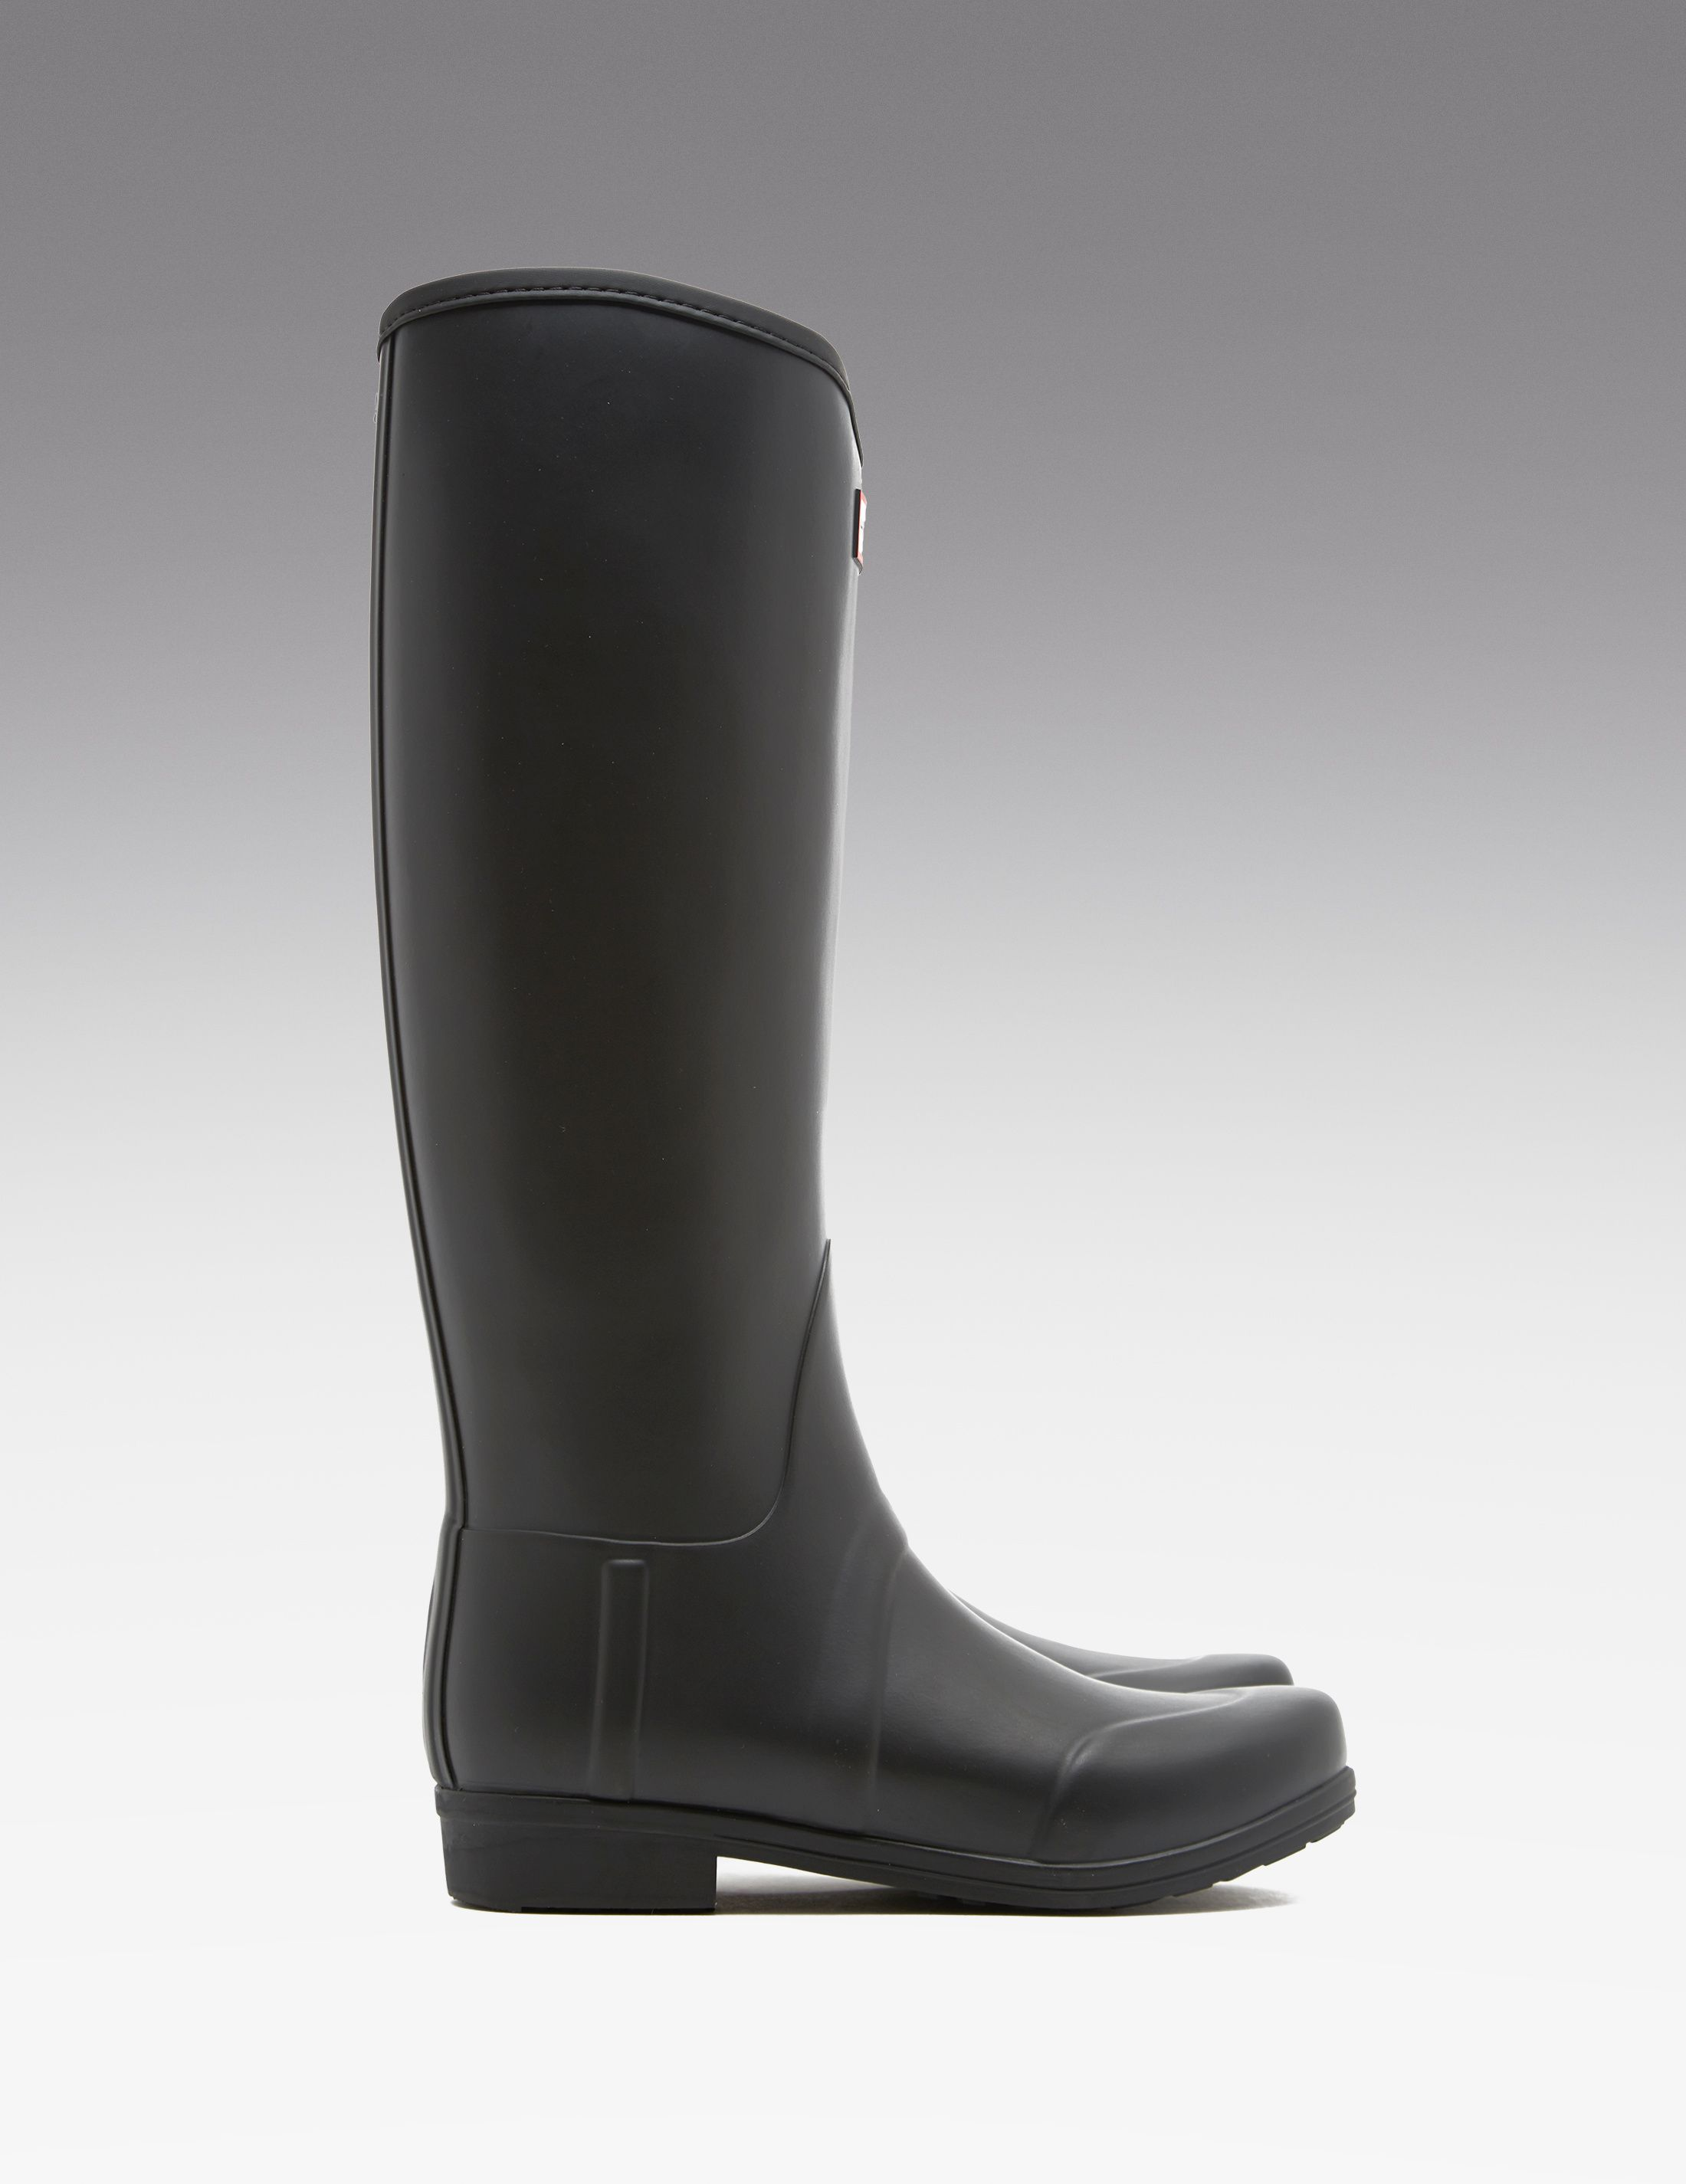 New Buy Hunter Sandhurst Equestrian Style Welly Boots  Black Online At